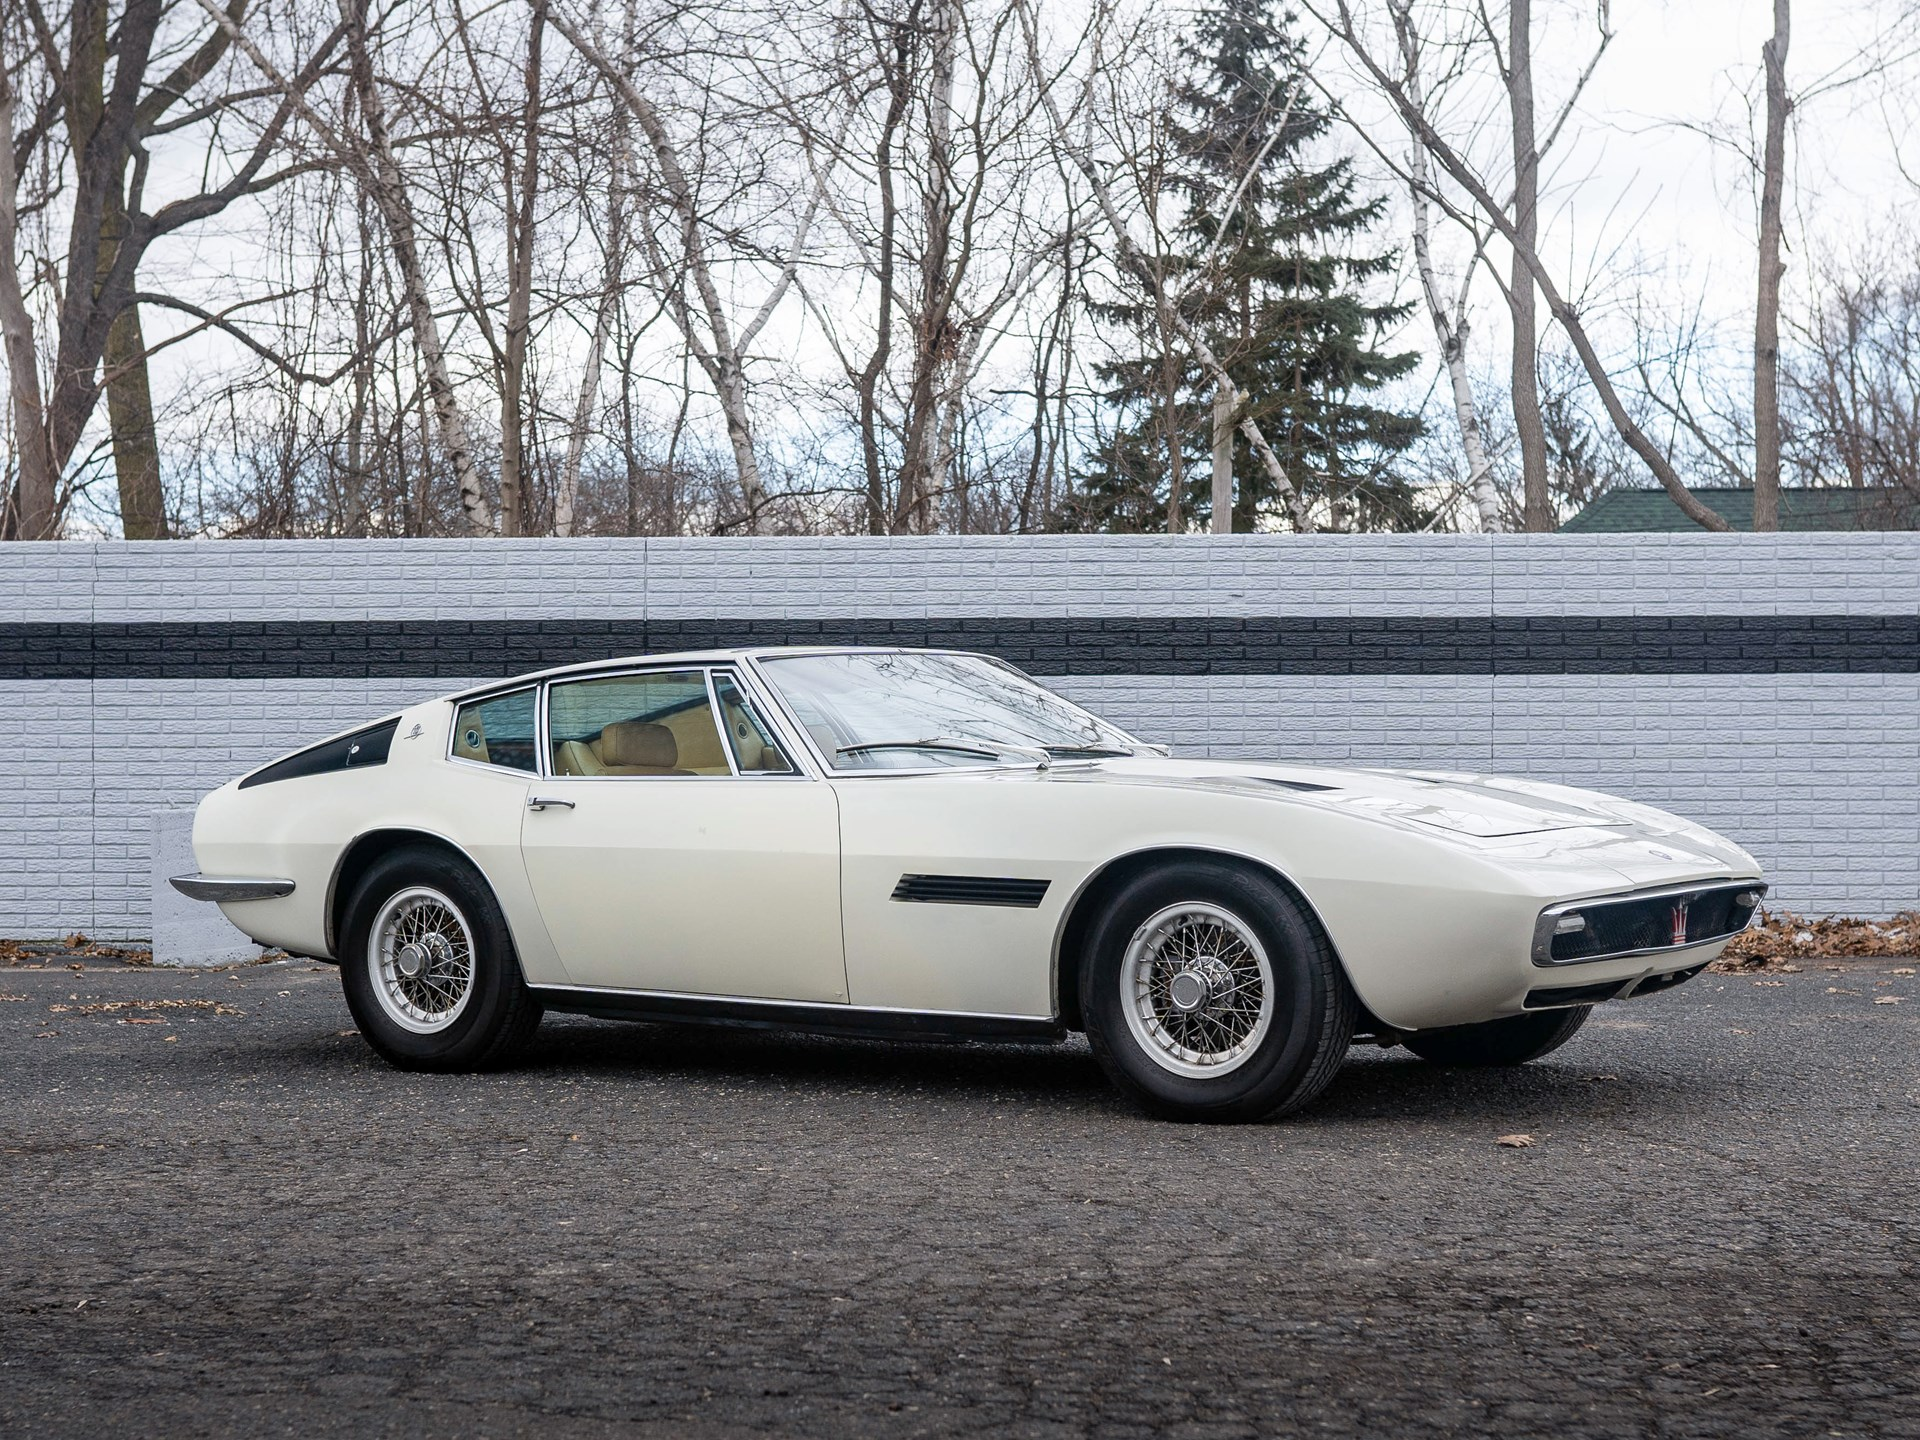 1967 Maserati Ghibli 4.7 Coupe sold for $84,700